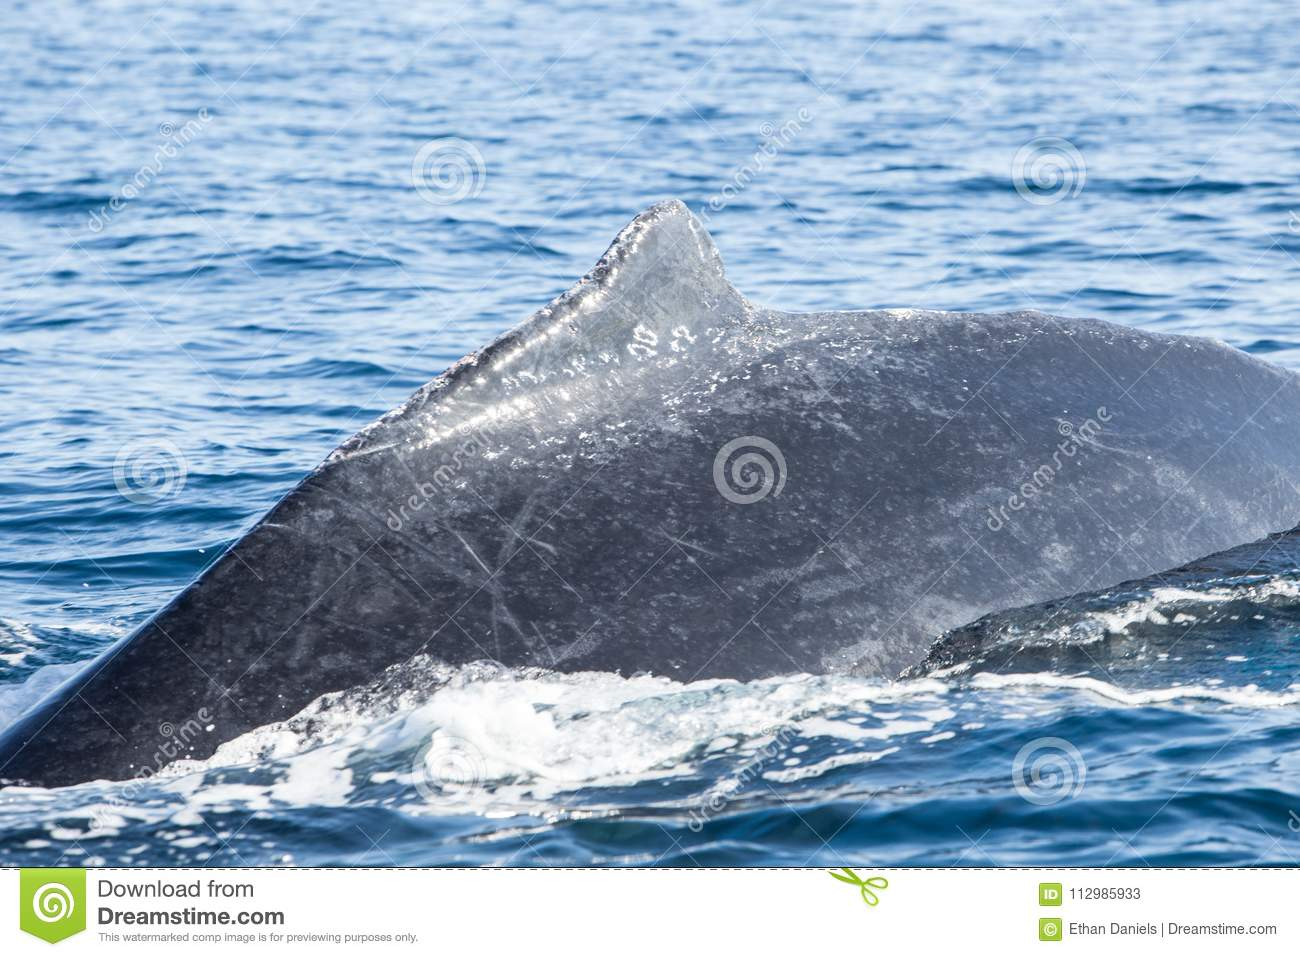 Humpback Whale Dorsal Fin at Surface